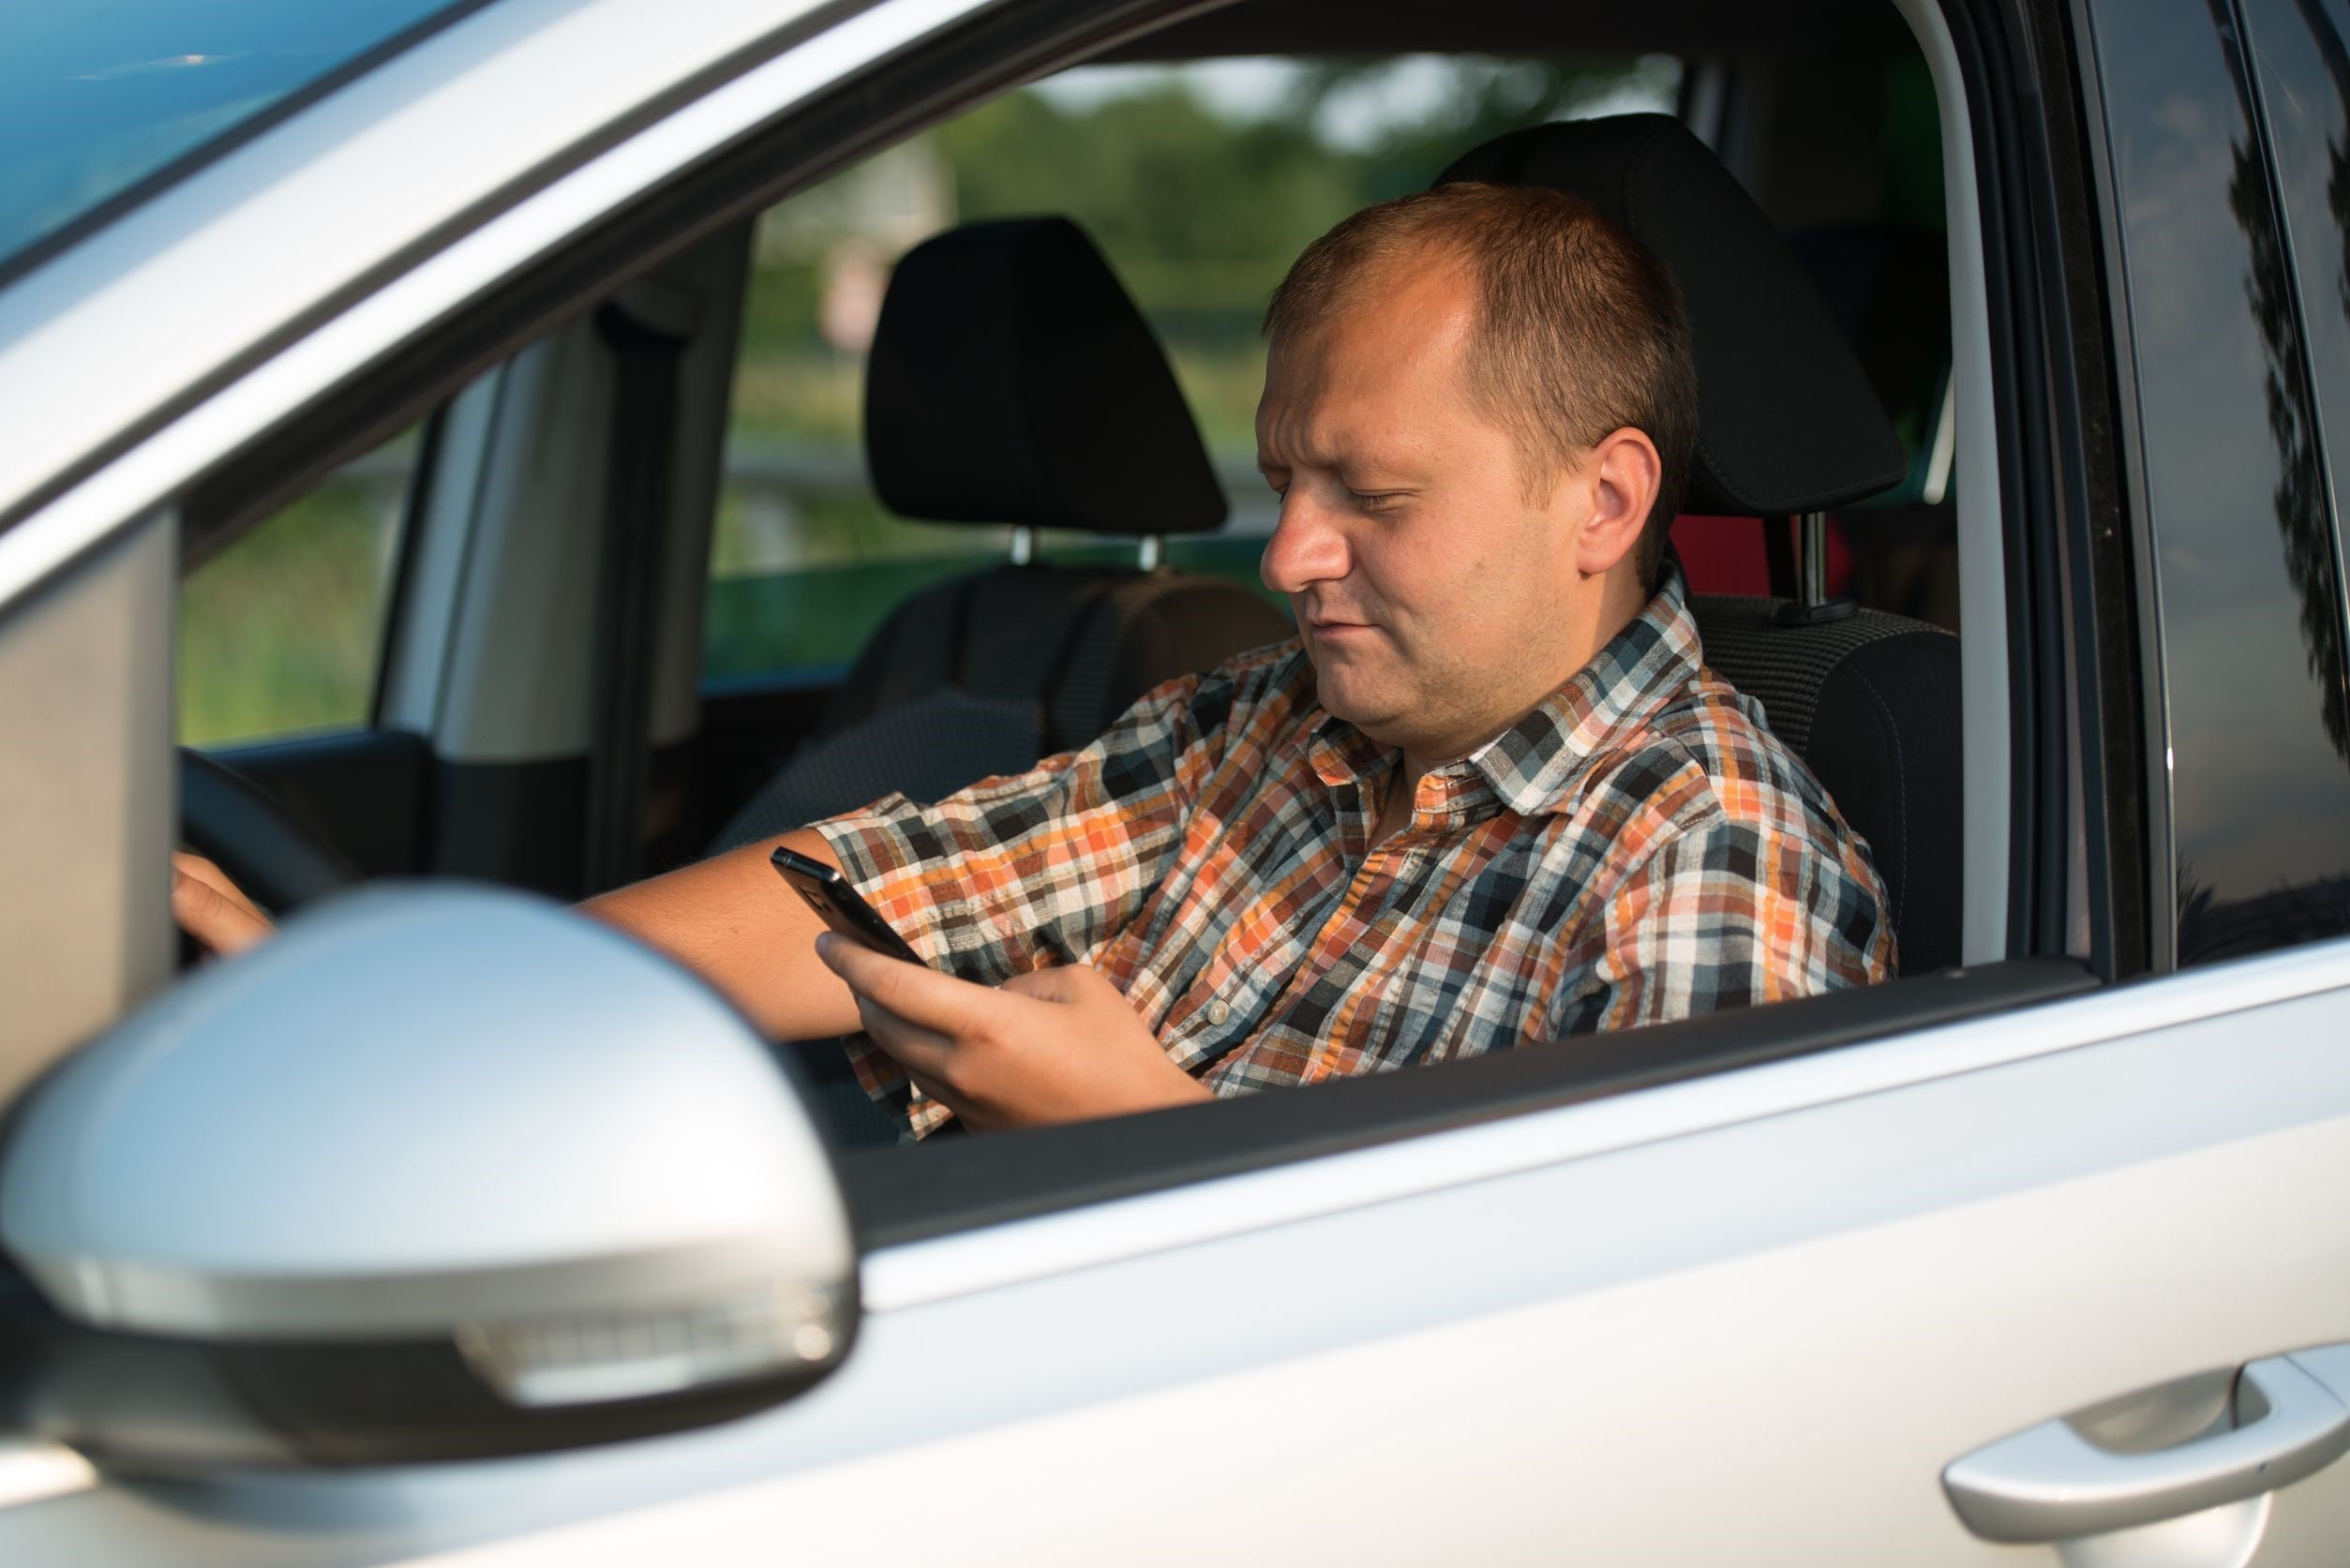 Adults Text While Driving More Than Teens